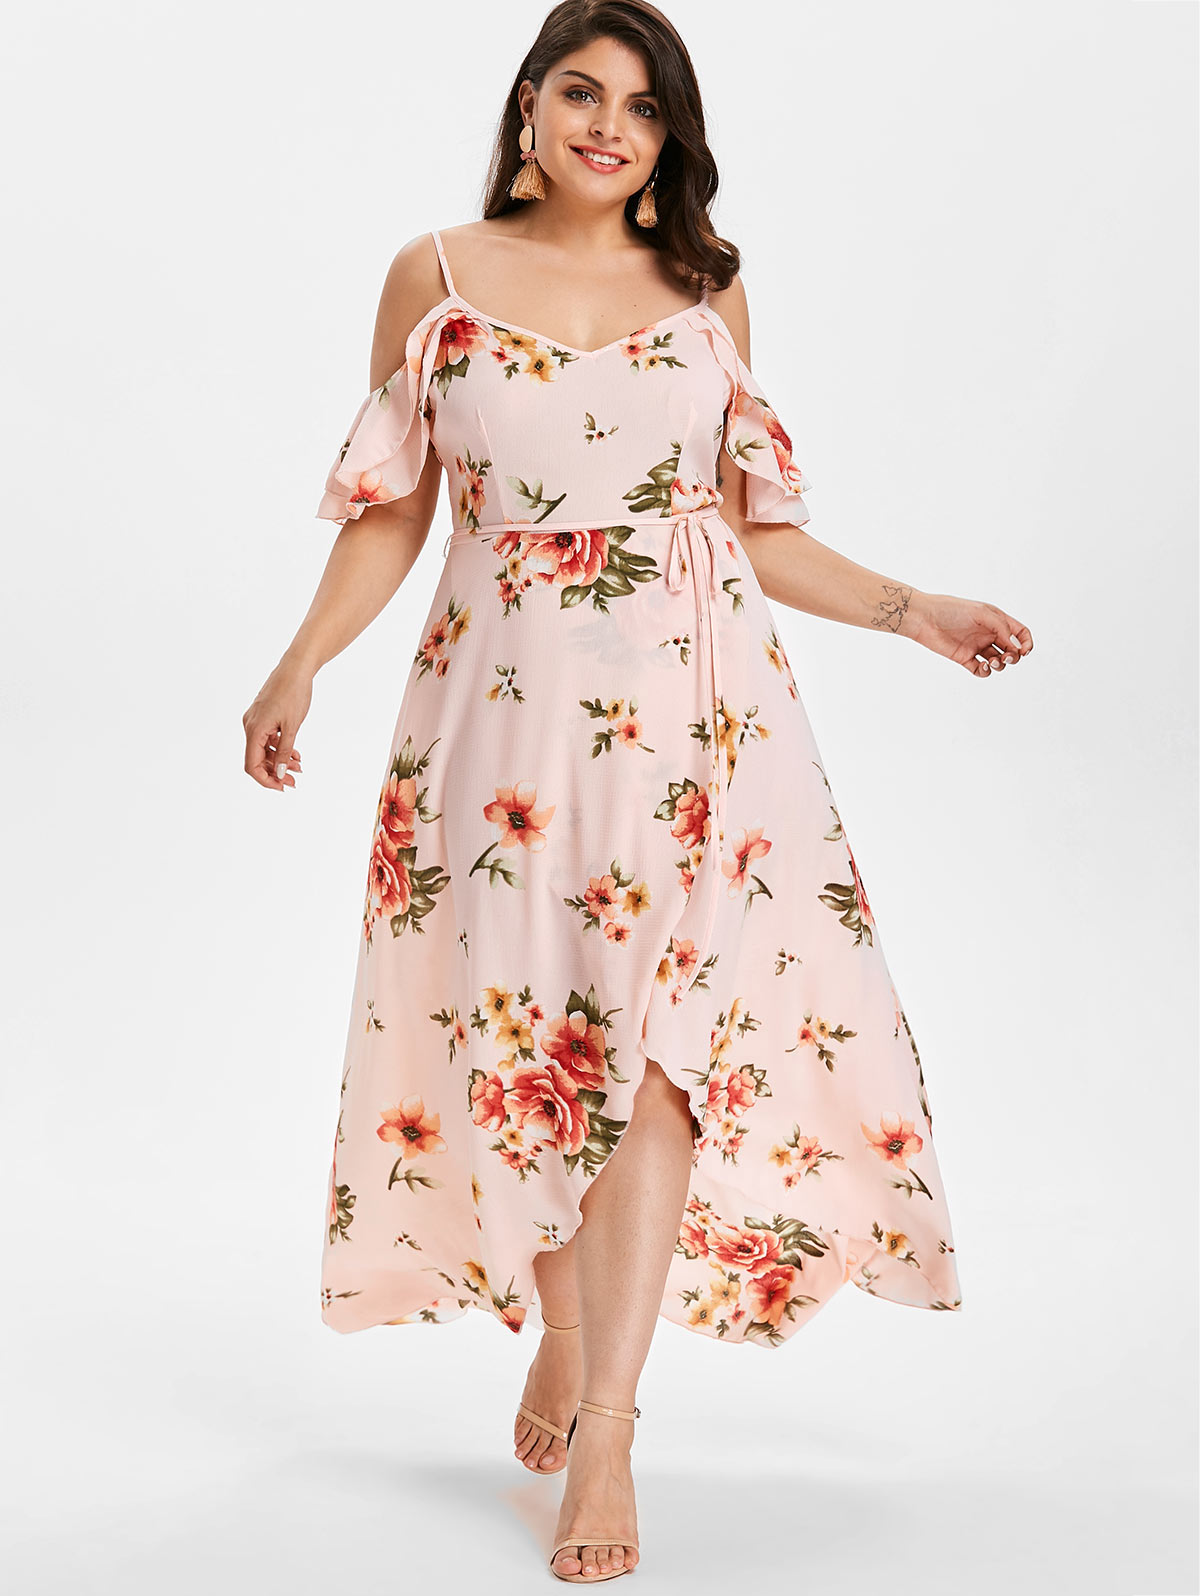 US $14.01 39% OFF|Wipalo Plus Size Cold Shoulder Belt Overlap Floral Print  Dress Women Spaghetti Strap Half Sleeves Dresses Bohemian Beach Dress-in ...